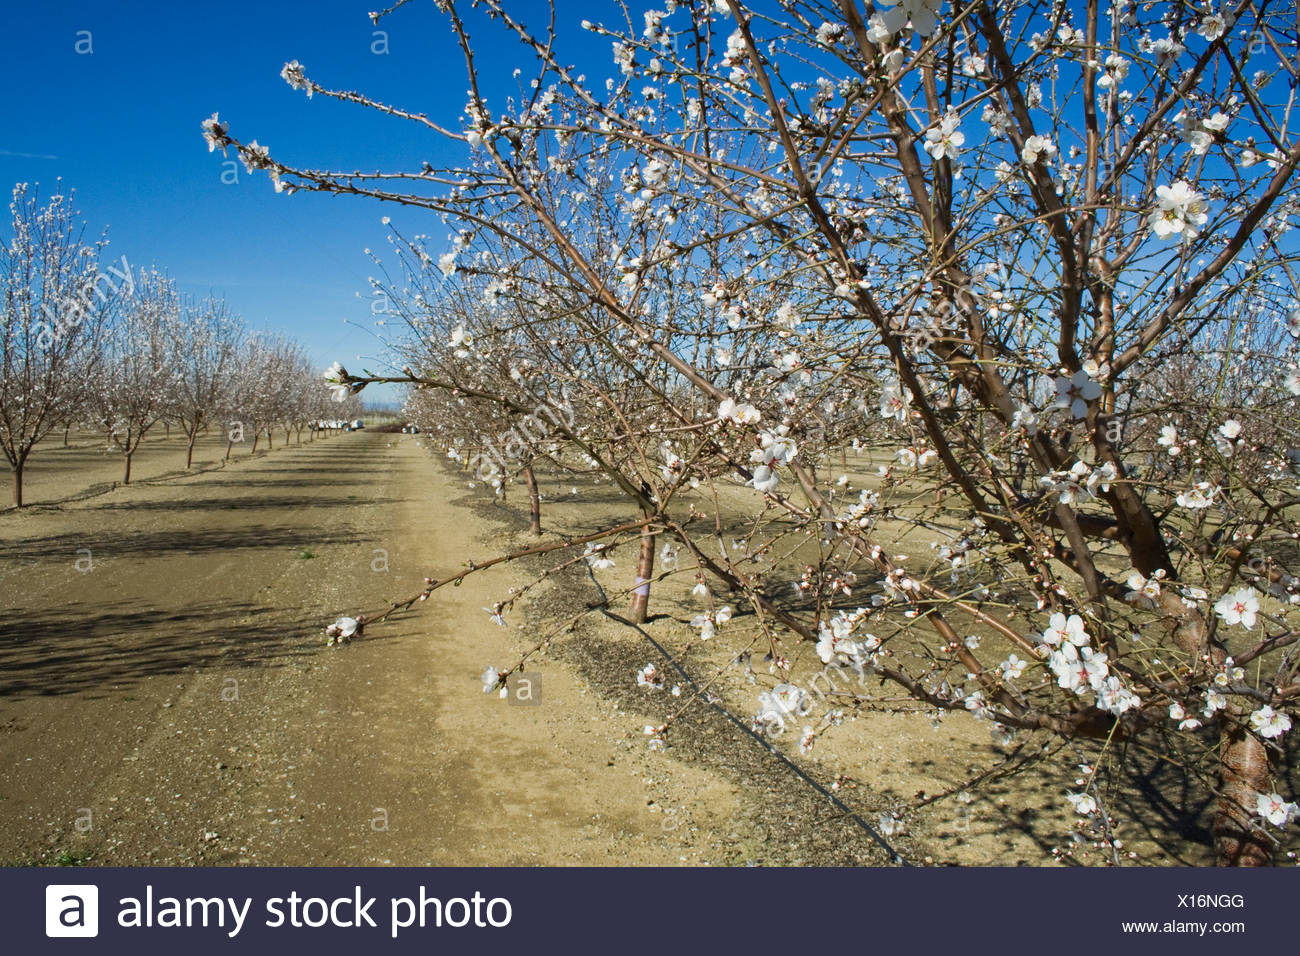 Almon orchard being used in a minimal pruning research project conducted by the University of California / California, USA. - Stock Image